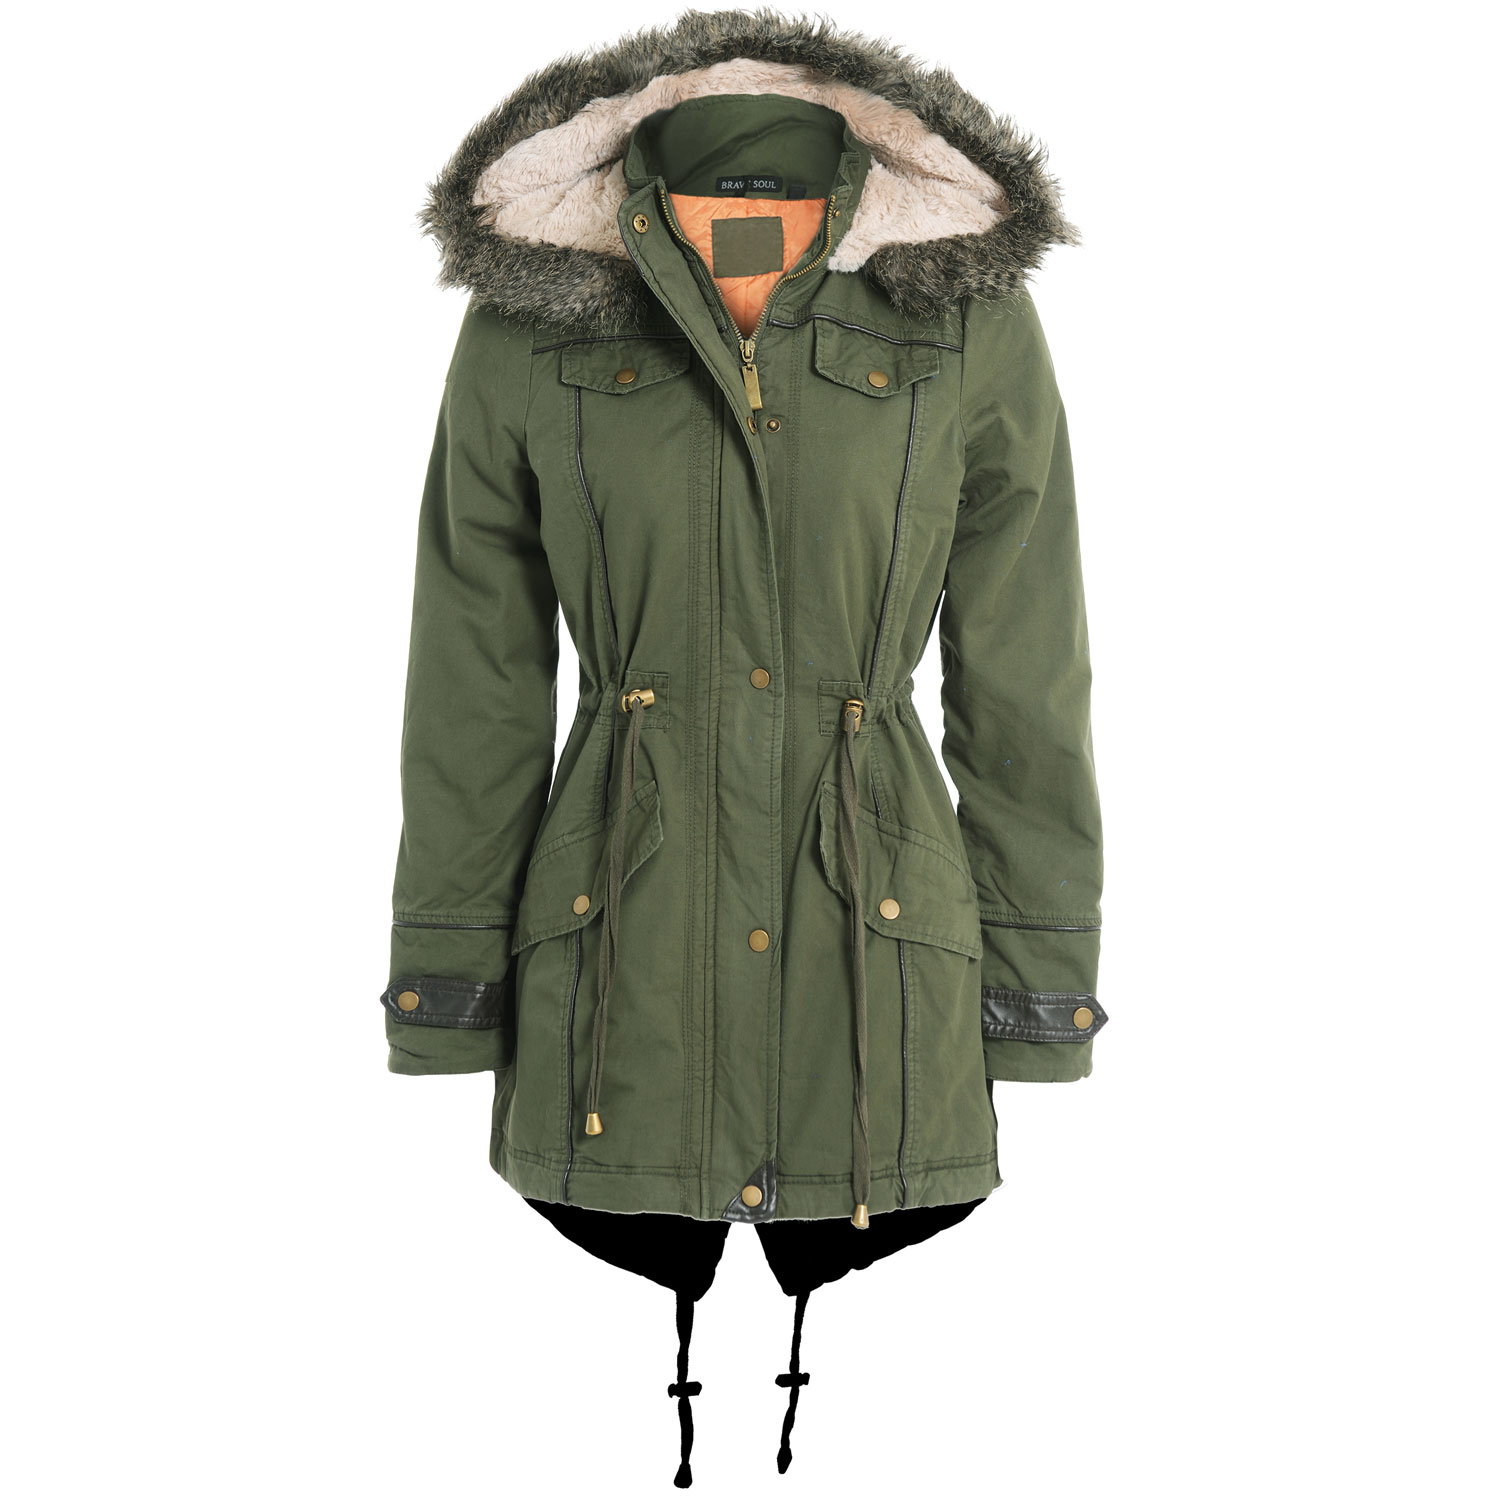 The iconic M is a Fishtail Parka, the fishtail being the shaped back of the coat which adds protection and warmth. The fishtail can be folded up and fastened inside the coat to aid movement – a feature which later made M Parkas popular among the UK's scooter-riding Mods of the 60s.